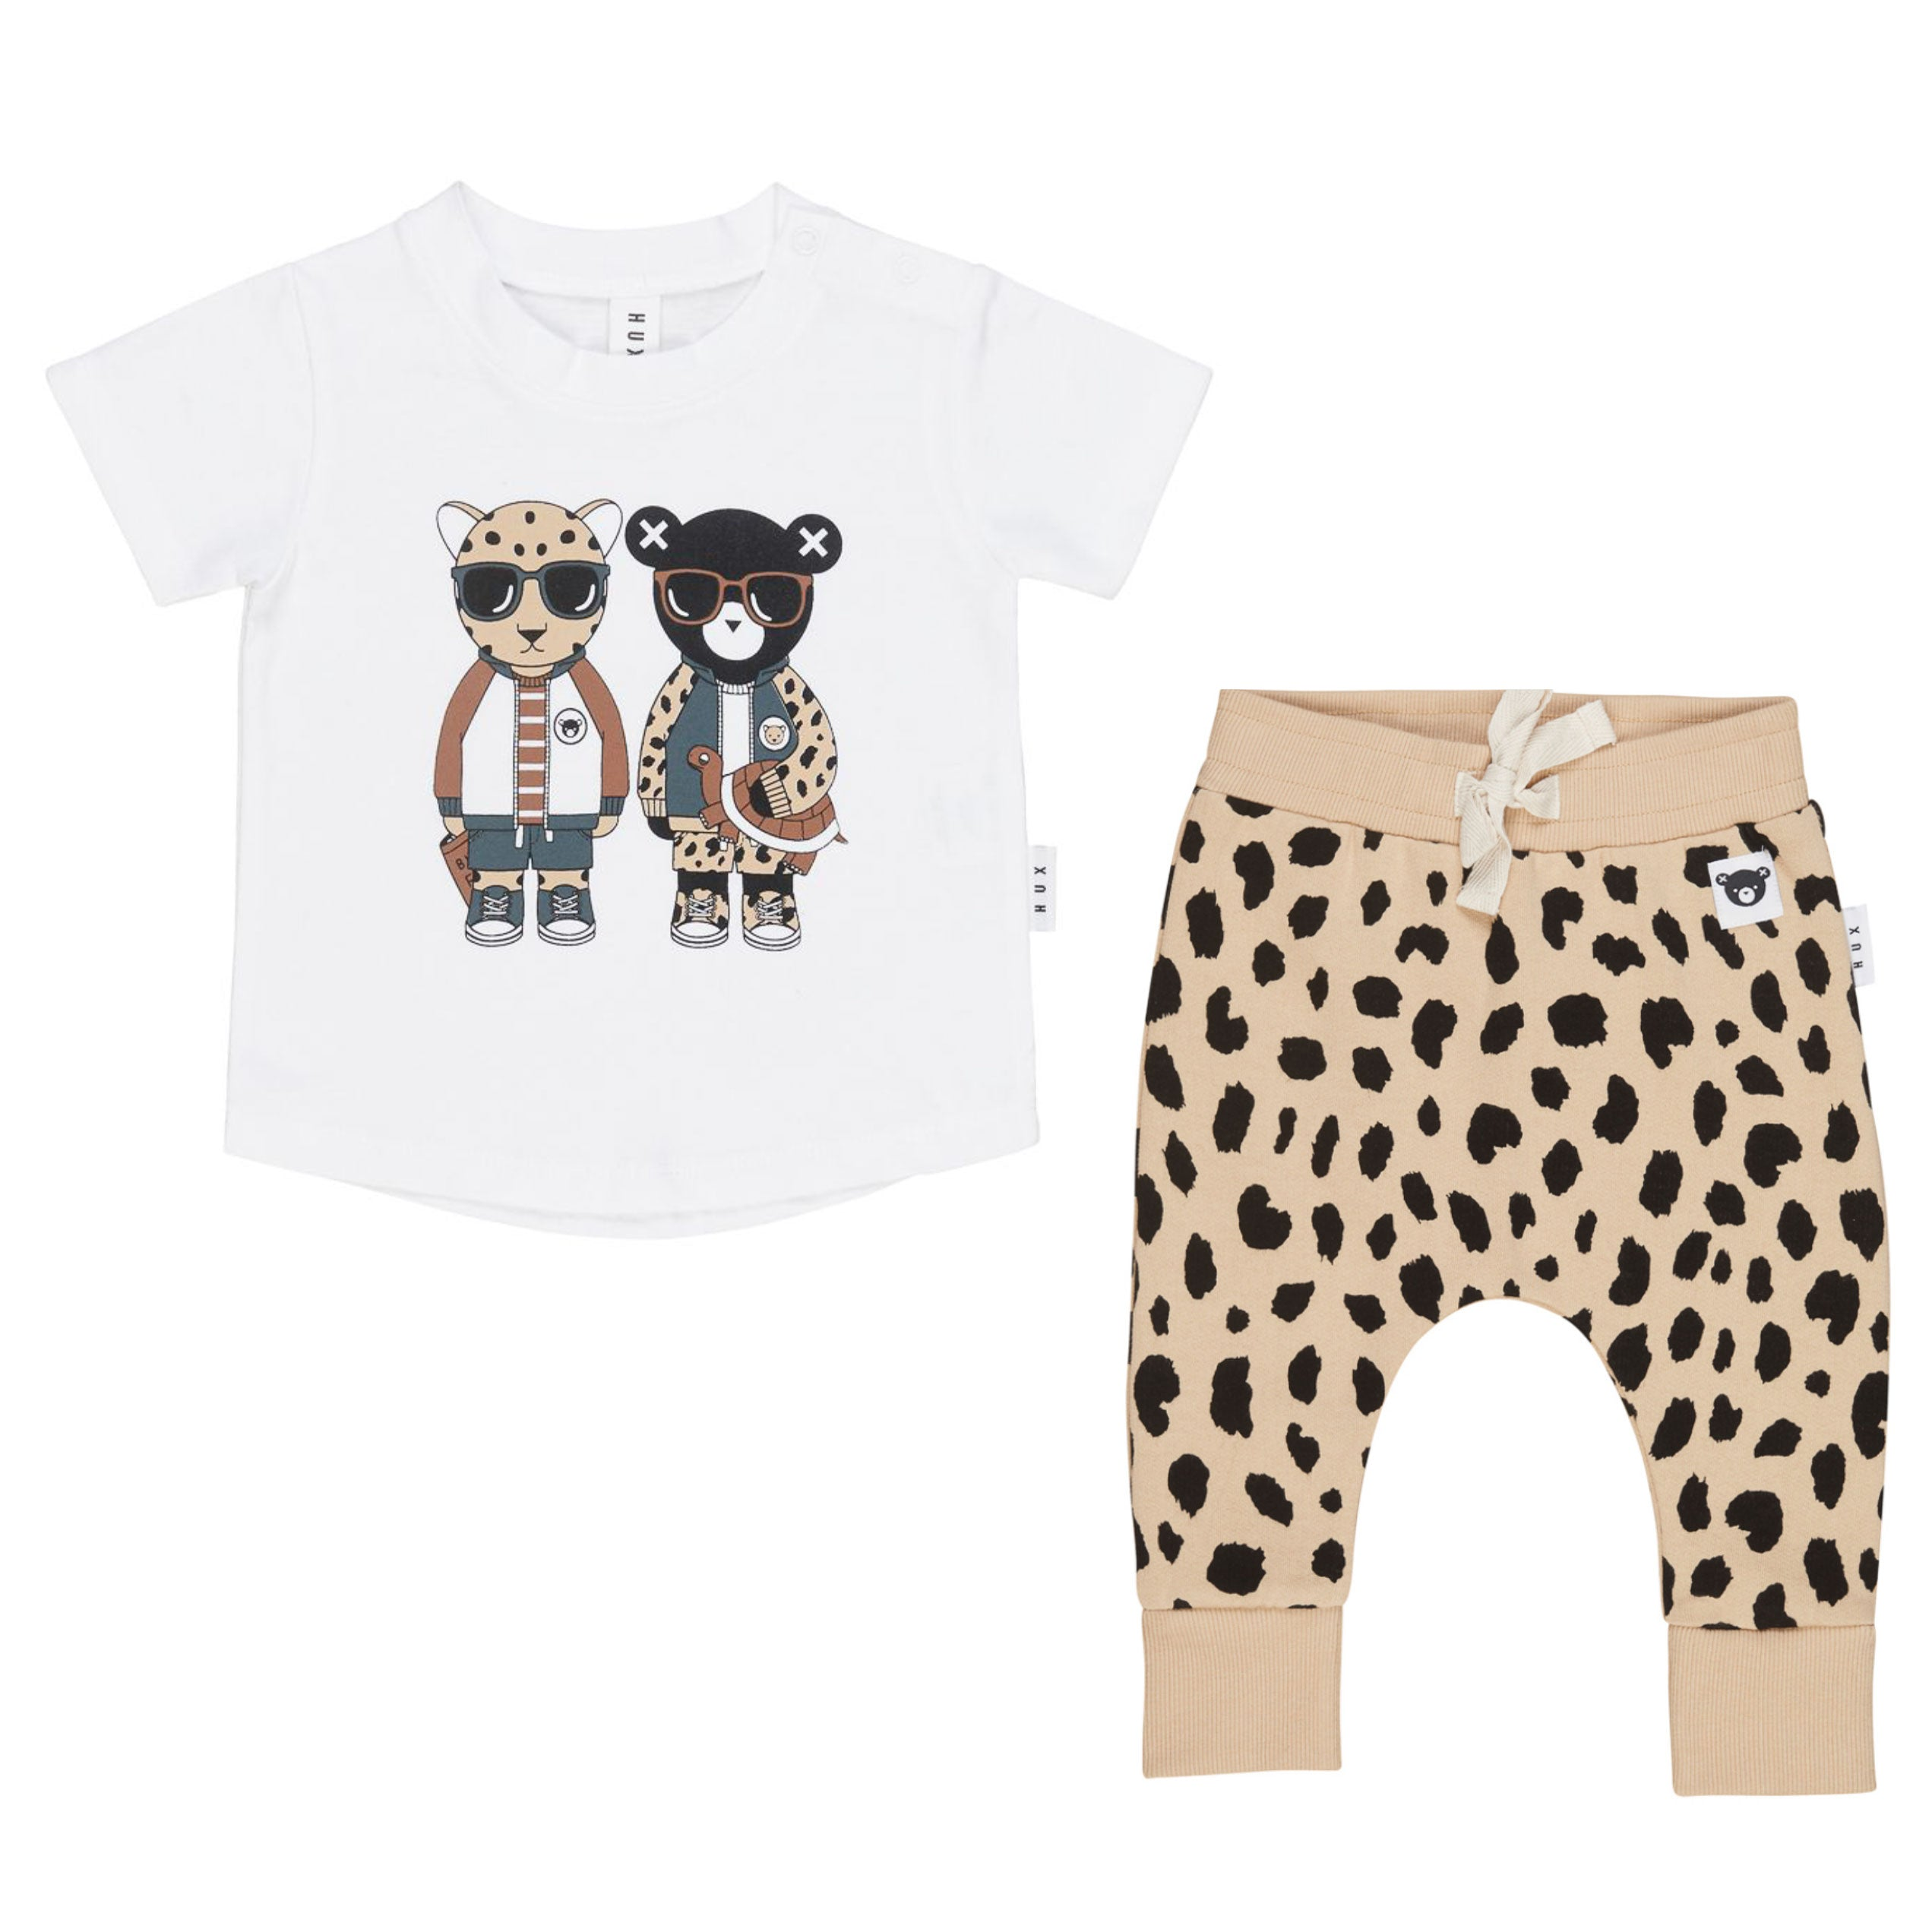 Huxbaby baby gift  at Bonjour Baby Baskets trendy baby gifts